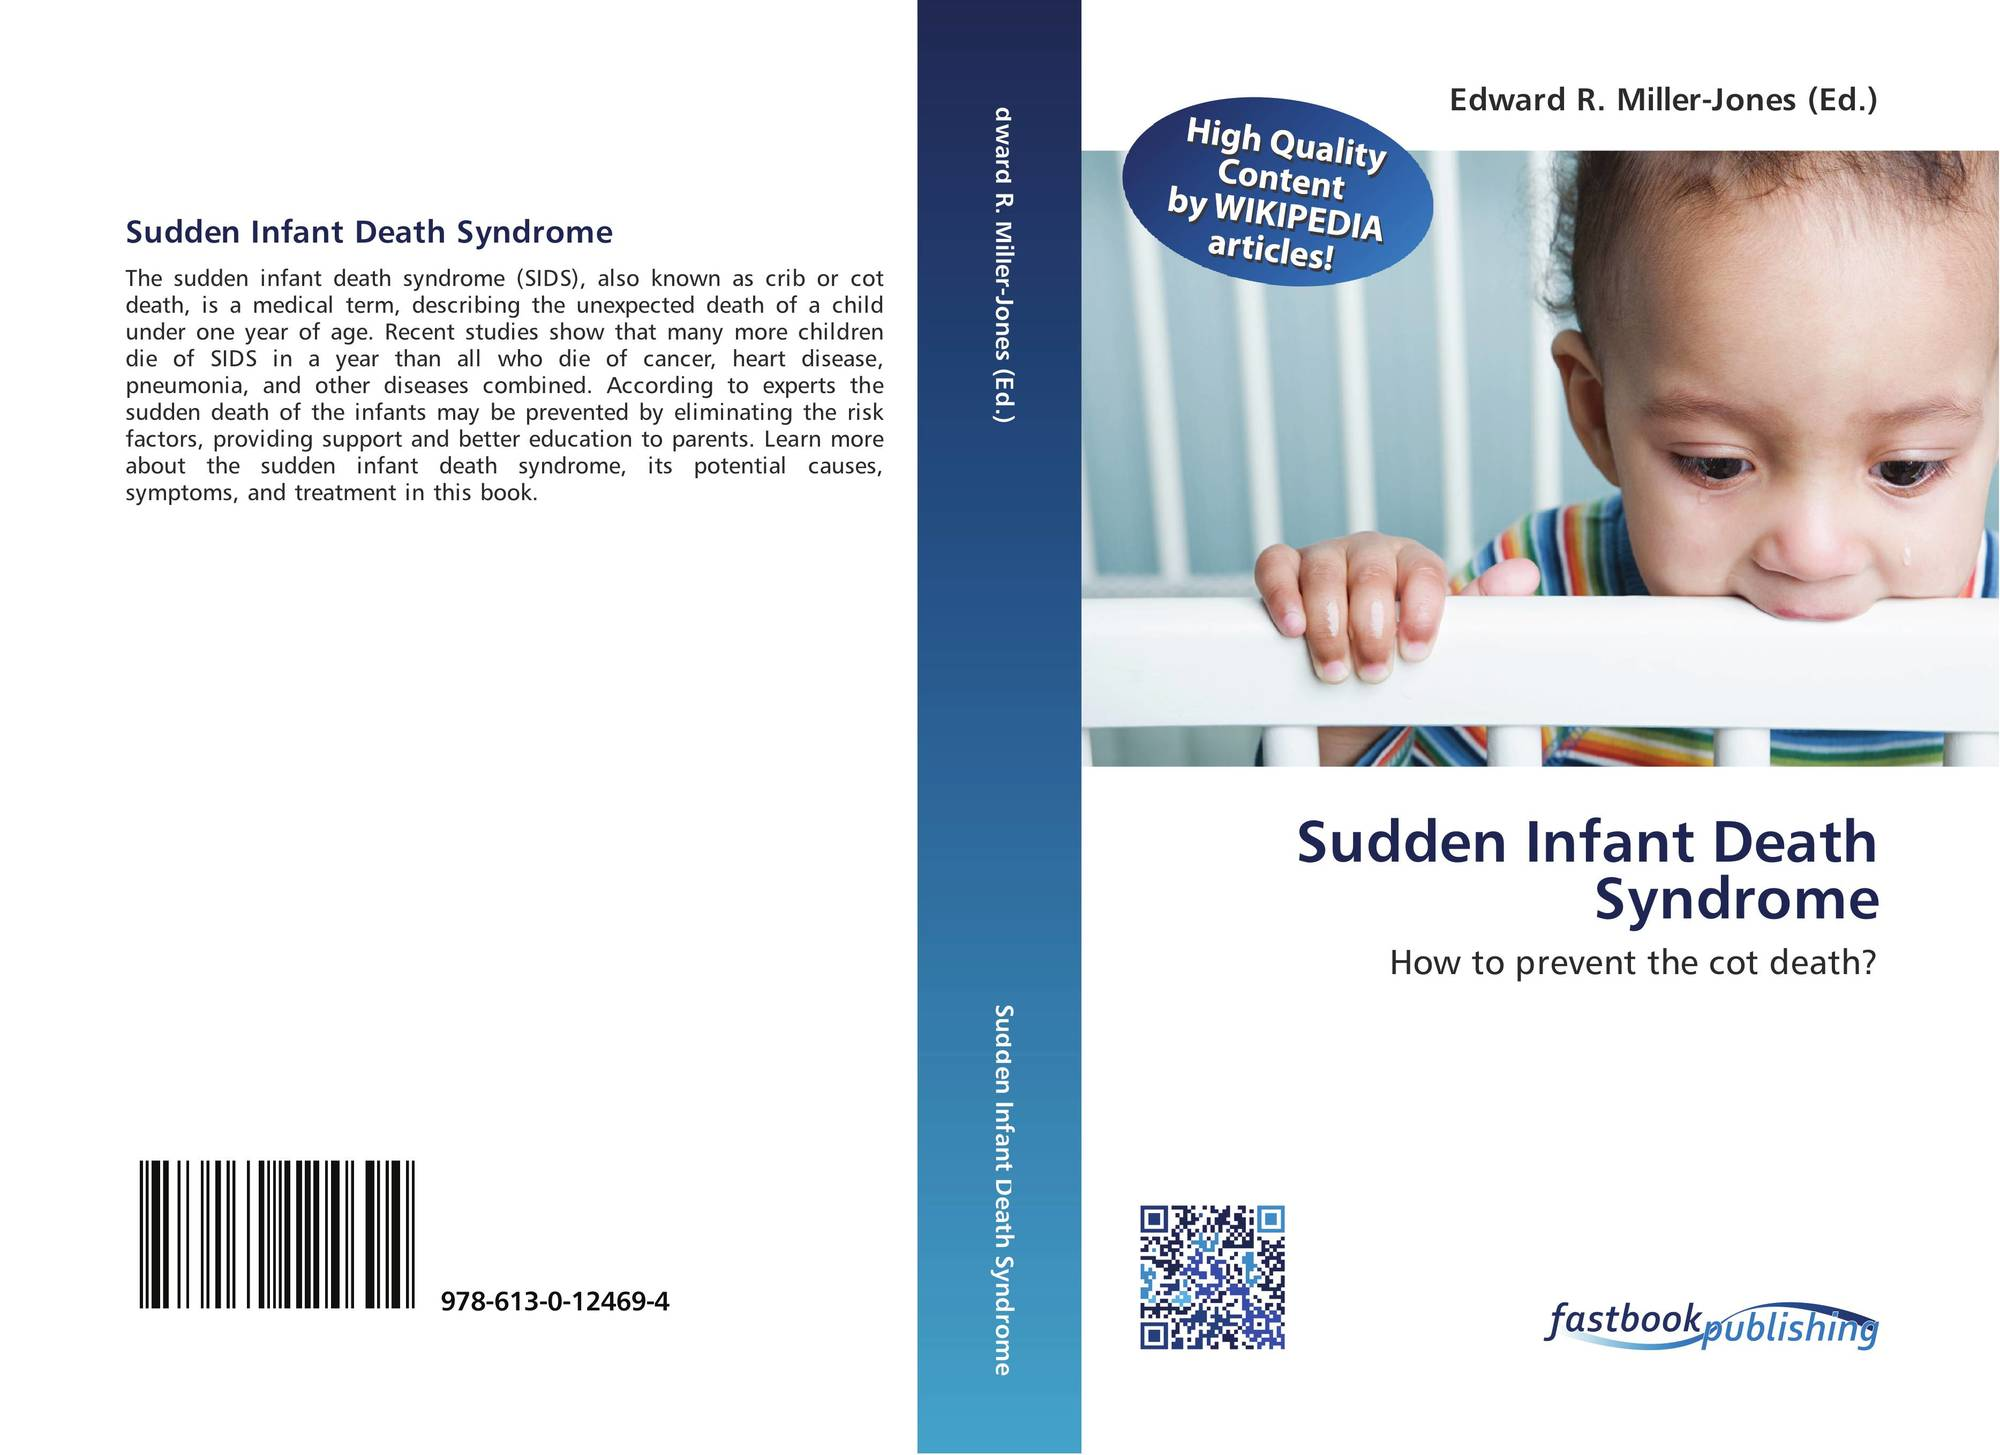 sudden infant death syndrome 2 Sudden infant death syndrome (sids) is the sudden and unexplained death of a baby younger than 1 year old most sids deaths are associated with sleep, which is why it's sometimes still called crib death a lack of answers is part of what makes sids so frightening sids is the leading cause of .